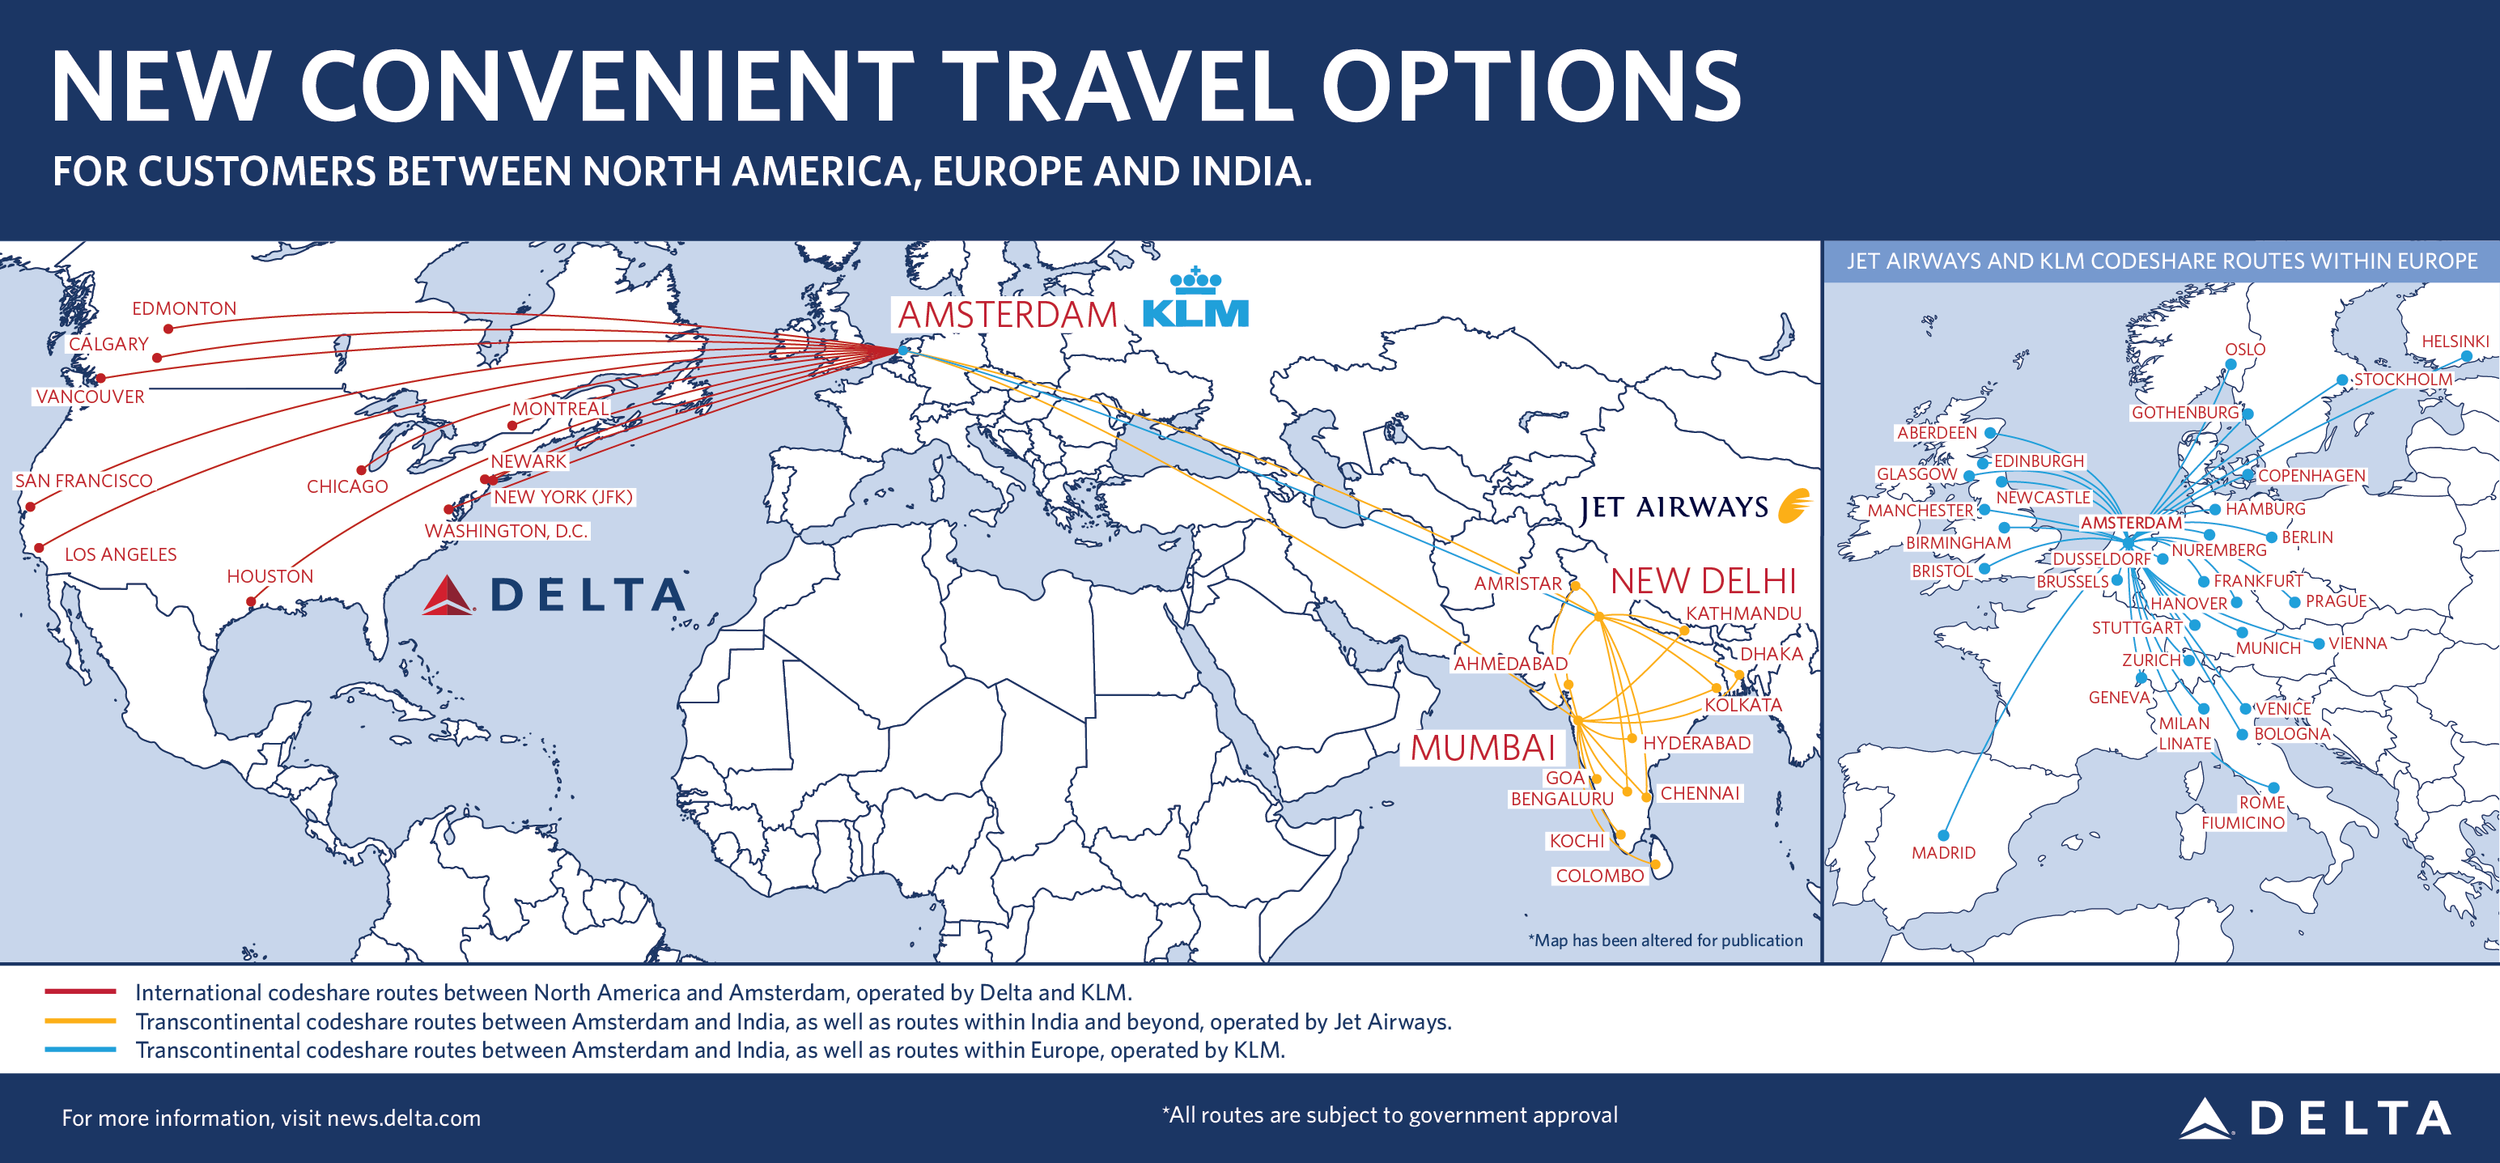 Route network of the new partnership between Delta, KLM and Jet Airways  (click to enlarge)